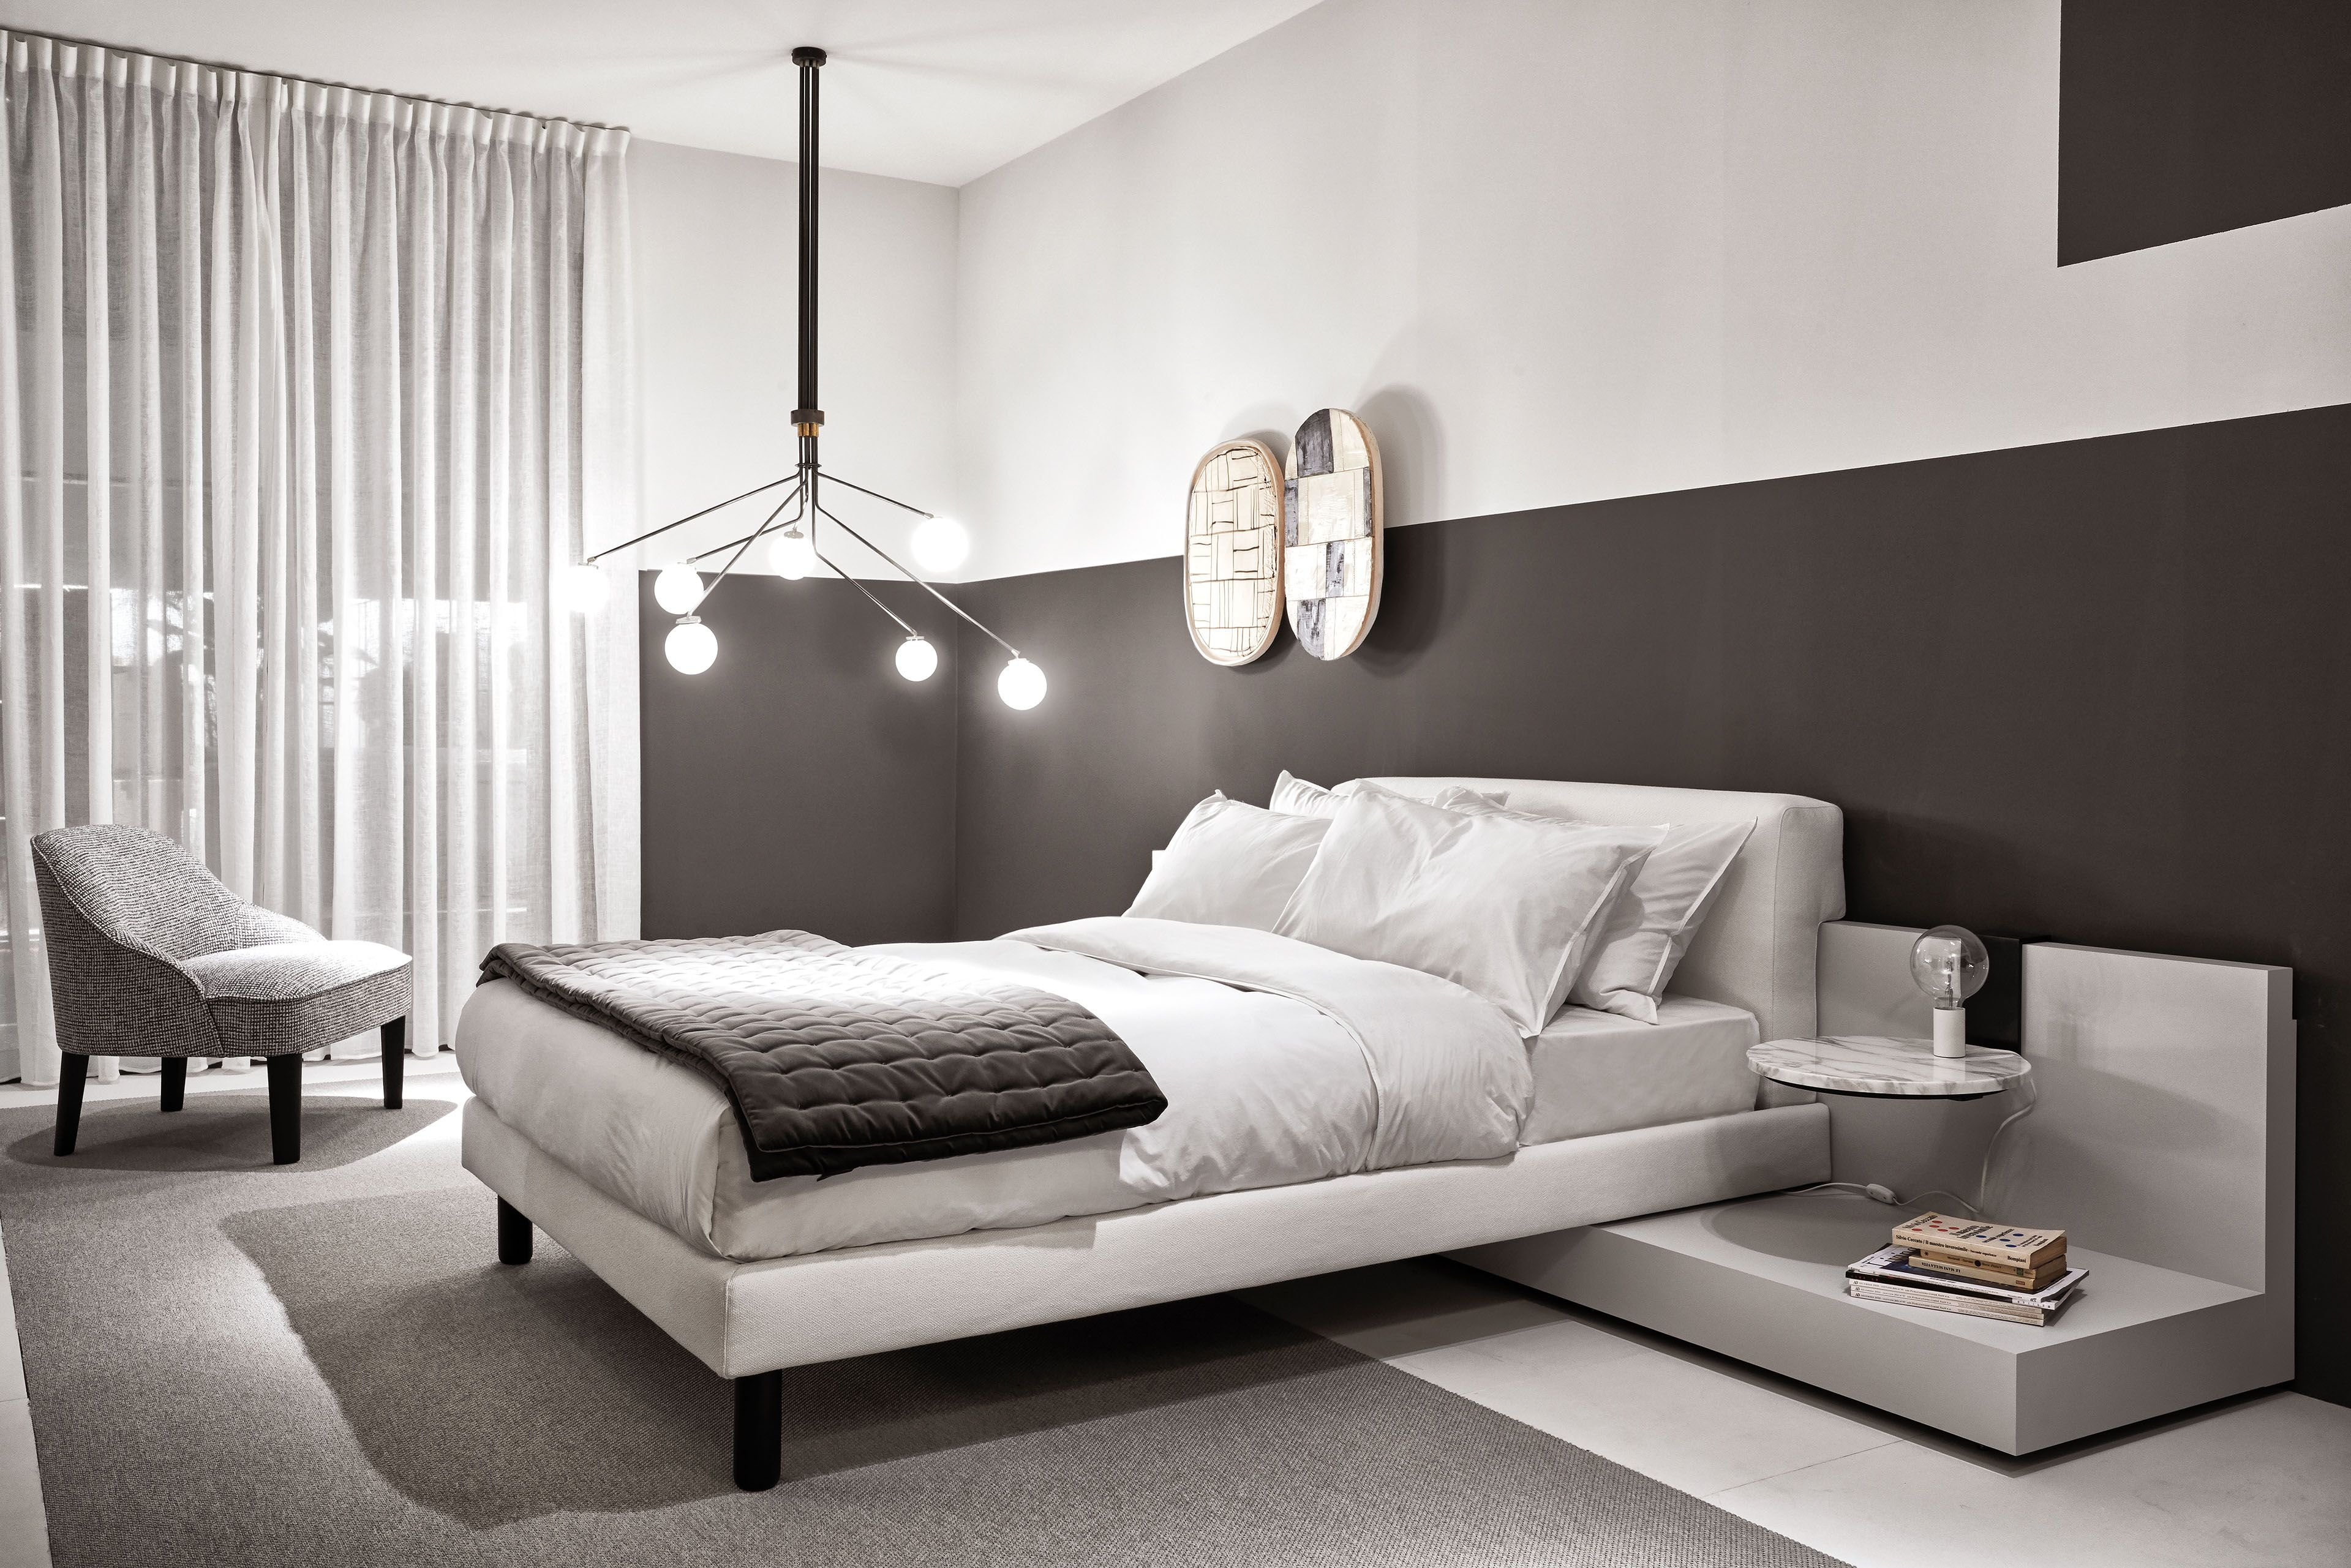 Cliff Modular Bed With Kira Small Armchair Modular Bed Bed